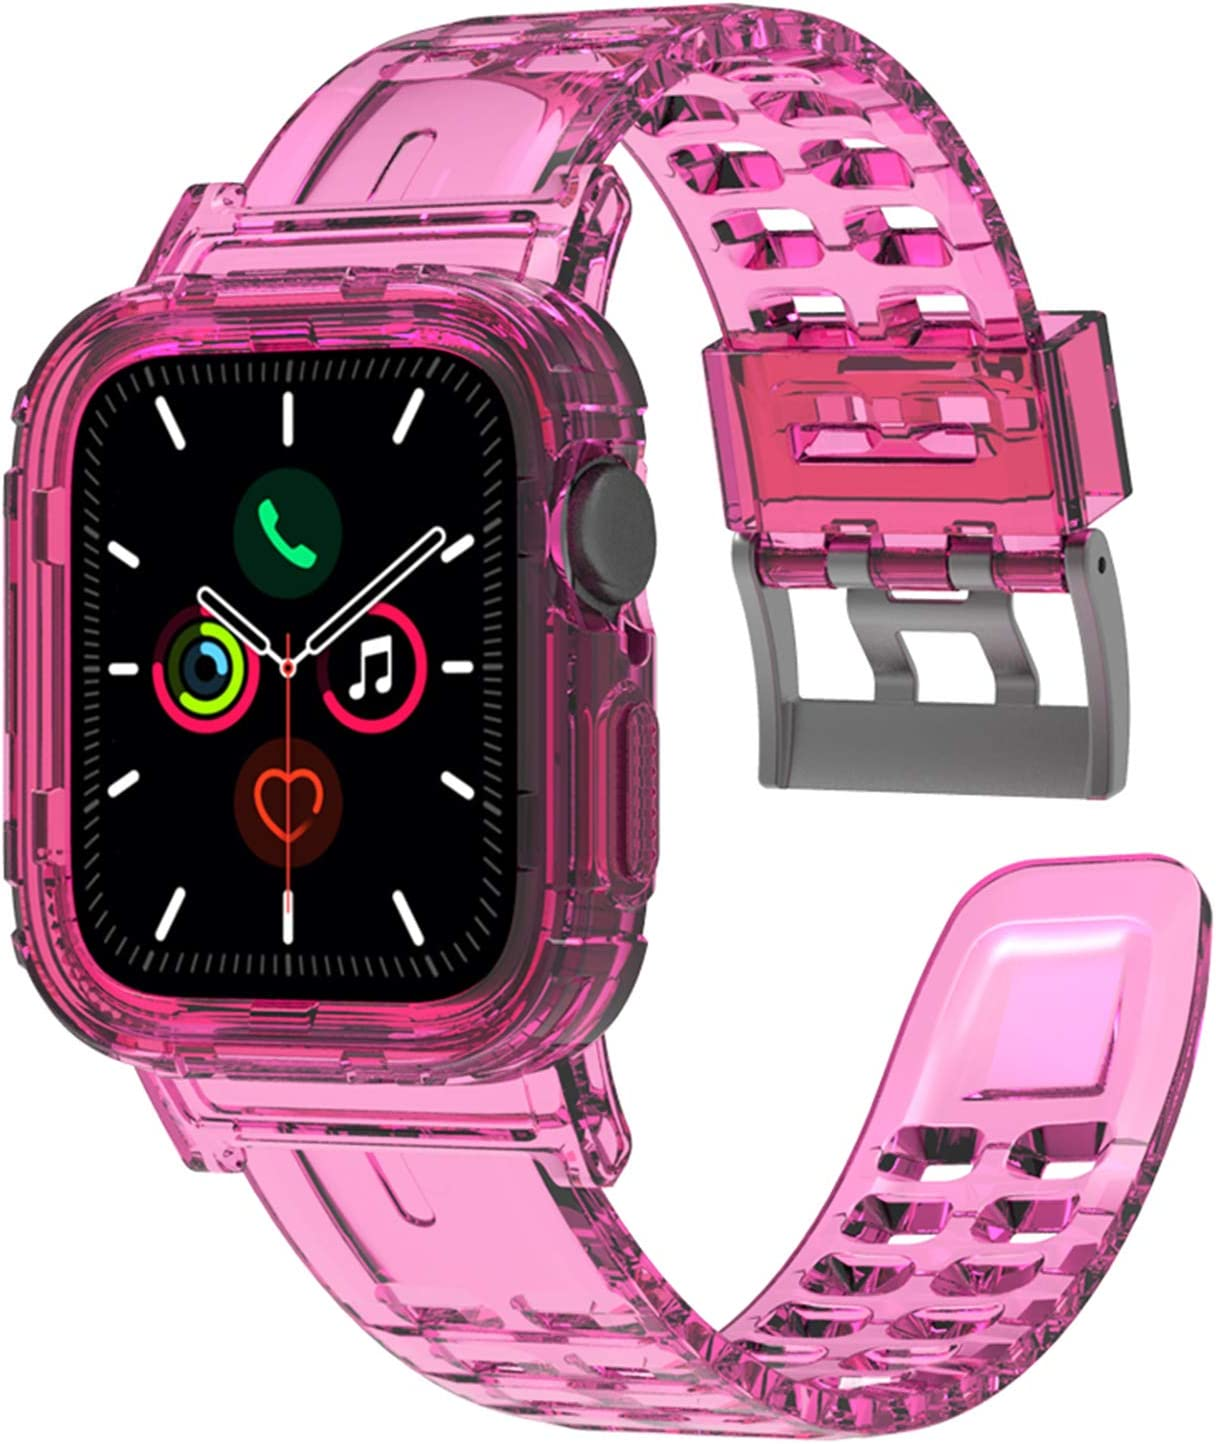 Giner Compatible with Apple Watch Band with Case, Women Man Cute Girl Crystal Clear Rugged Bumper Protective Case with Bands Strap for Apple iWatch Series SE 6 5 4 3 2 1 (Pink 42mm 44mm)